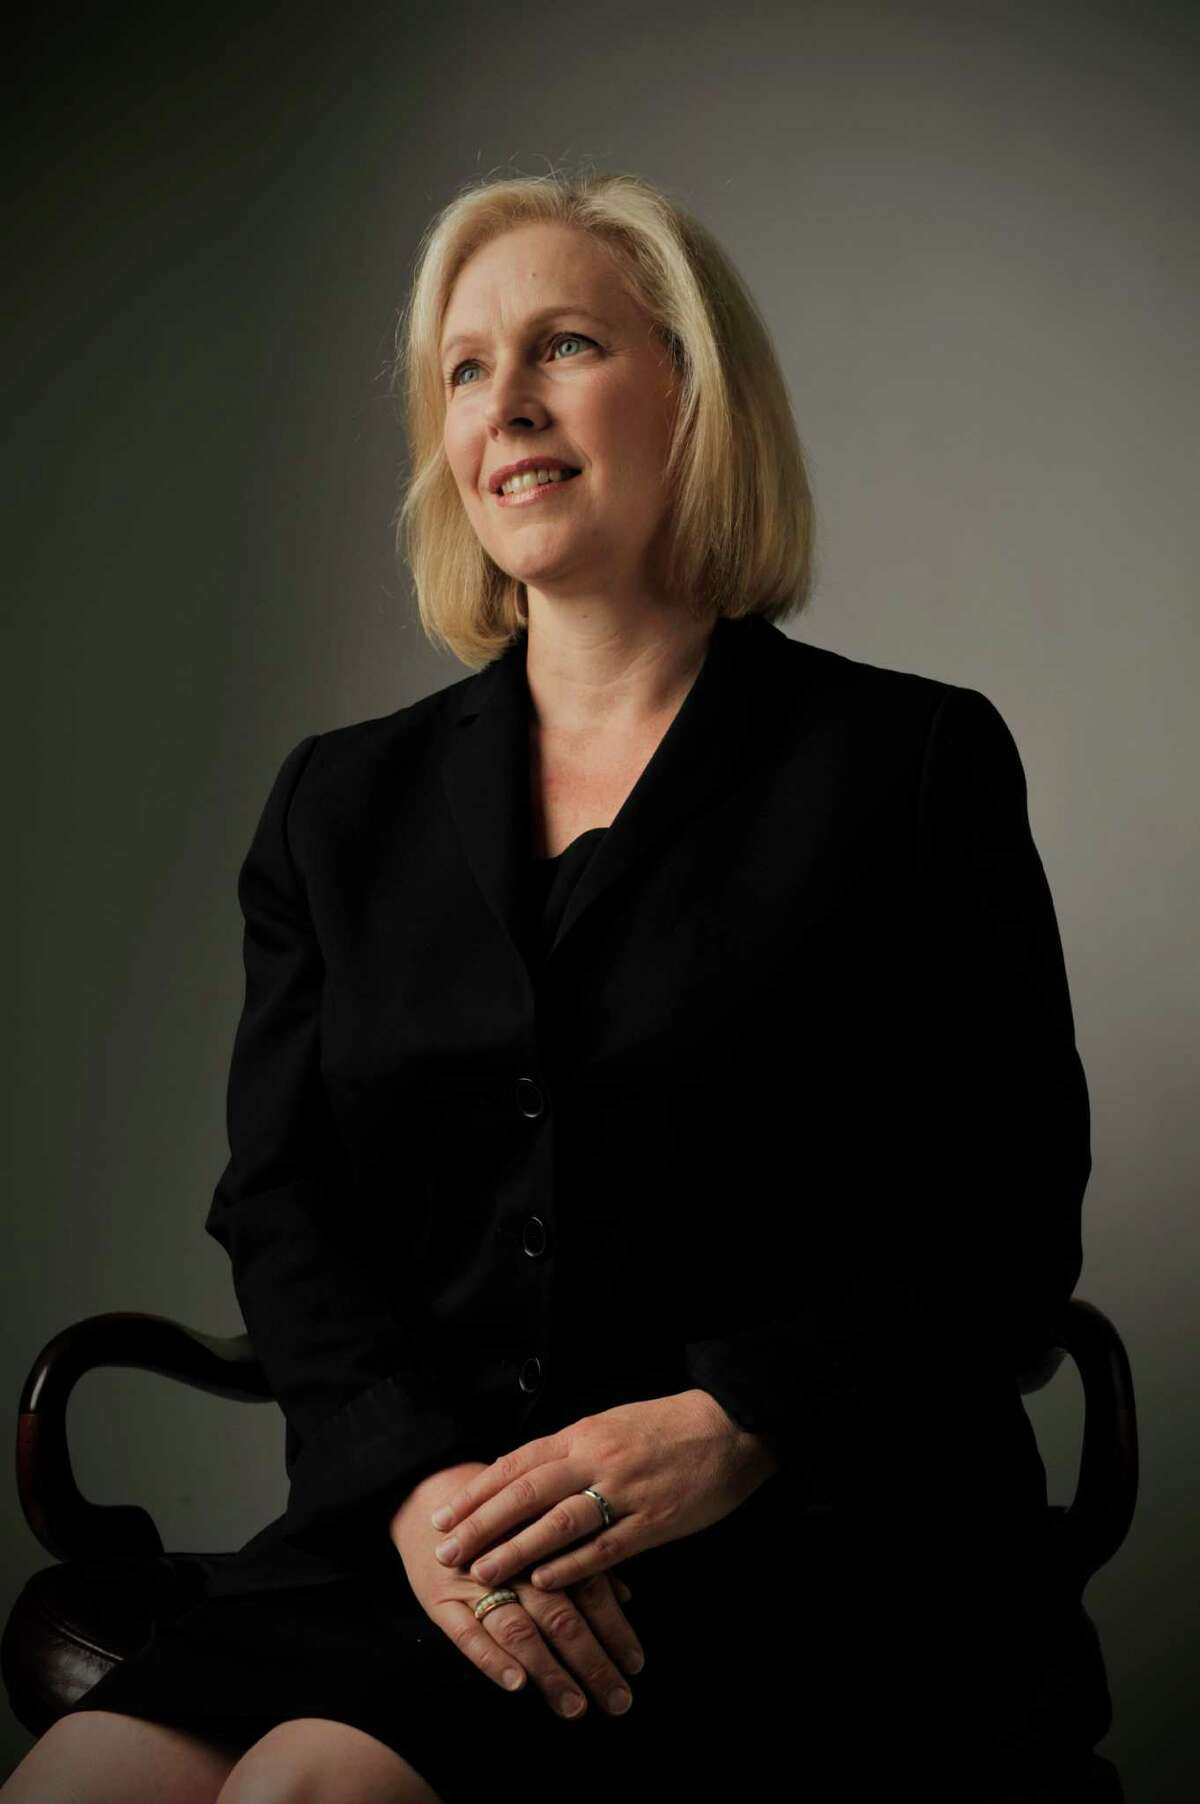 U.S. Senator Kirsten Gillibrand tells Women@Work what it's like to be a woman in the Senate. Read her story, and click through the slideshow to get insights from other female politicians.